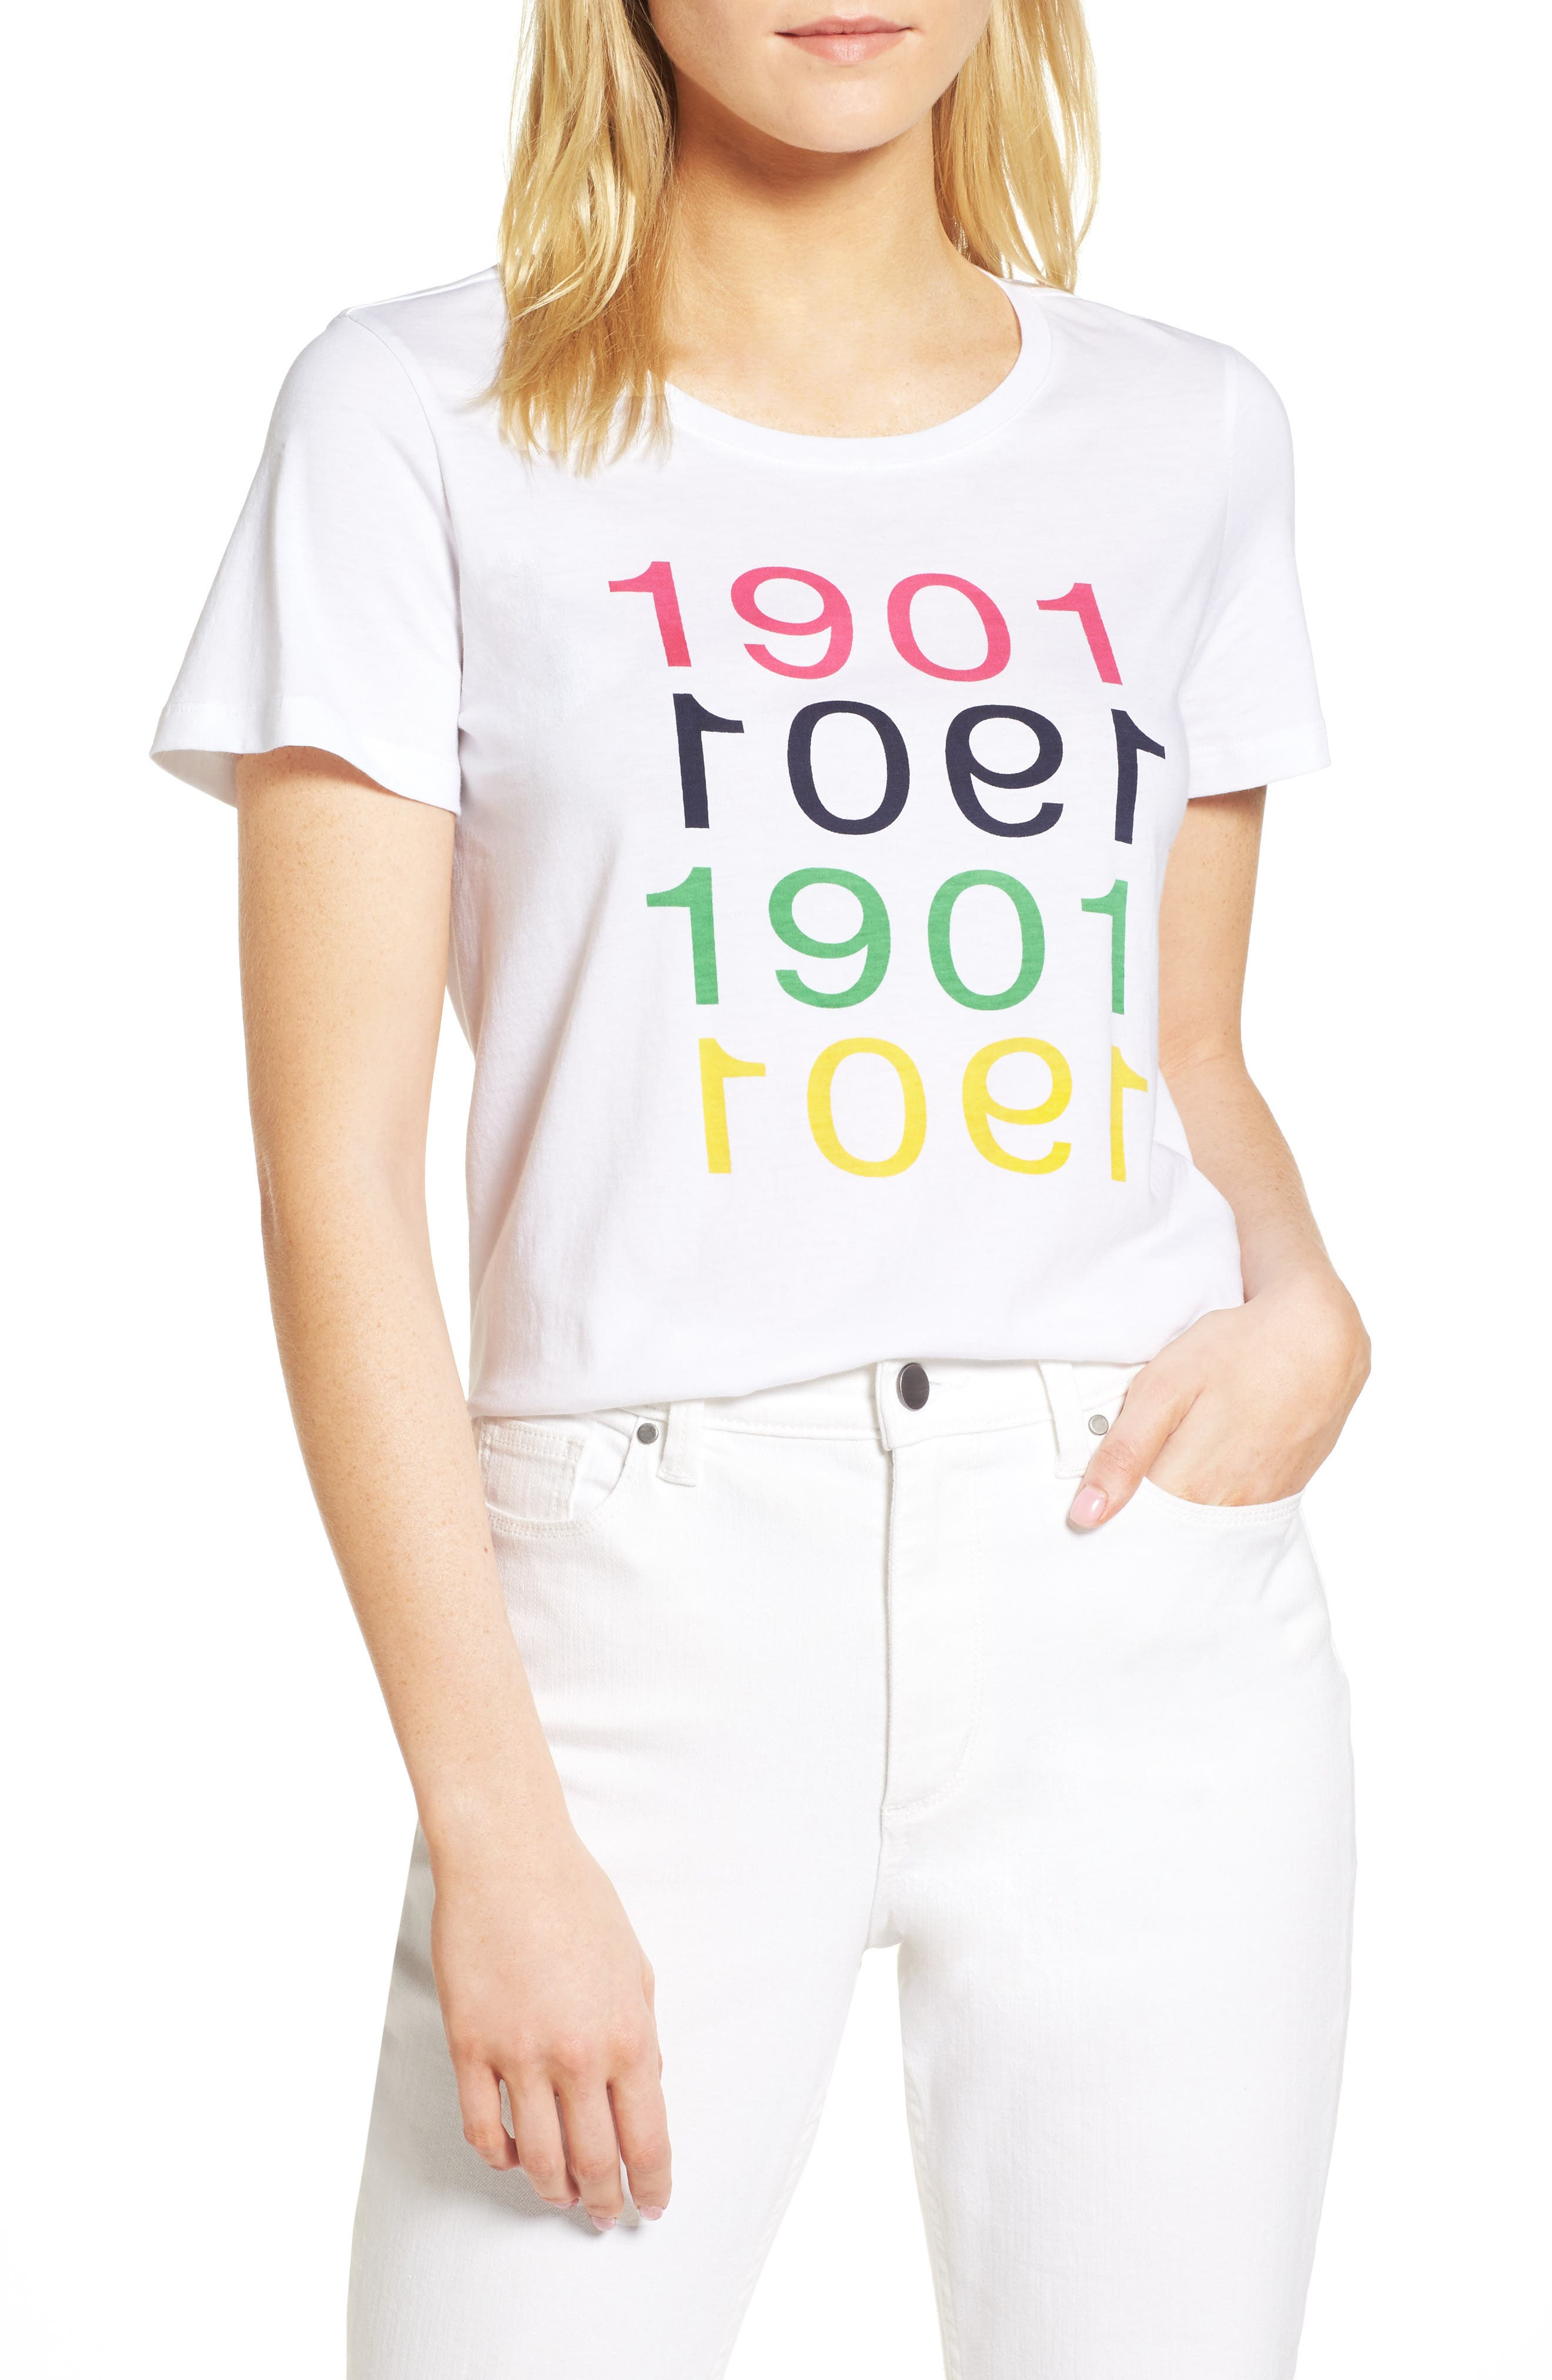 Short Sleeve Cotton Tee,                         Main,                         color, White Multi 1901